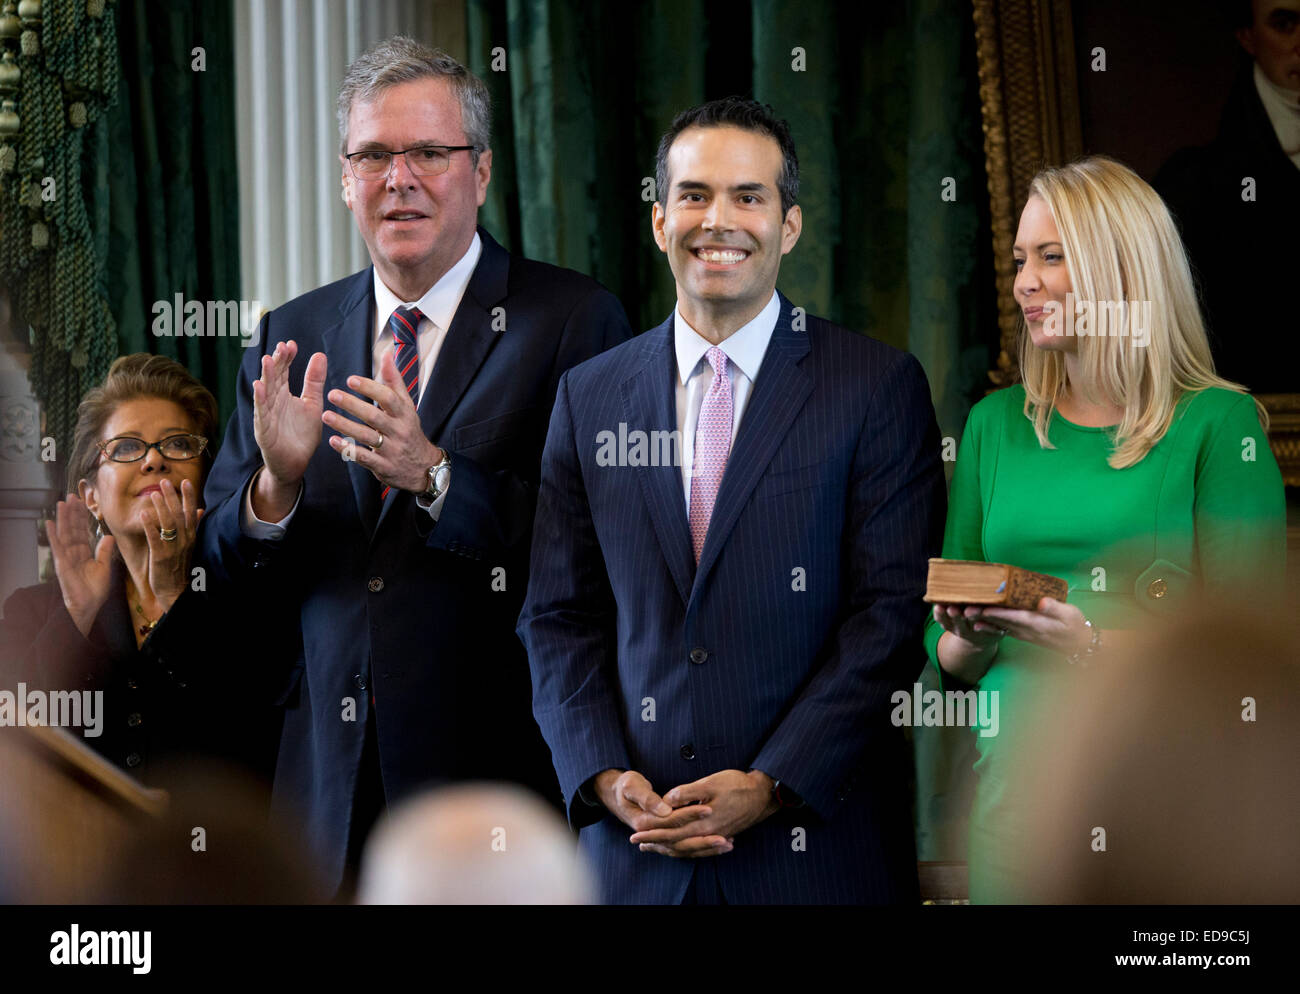 george p bush parents - photo #11